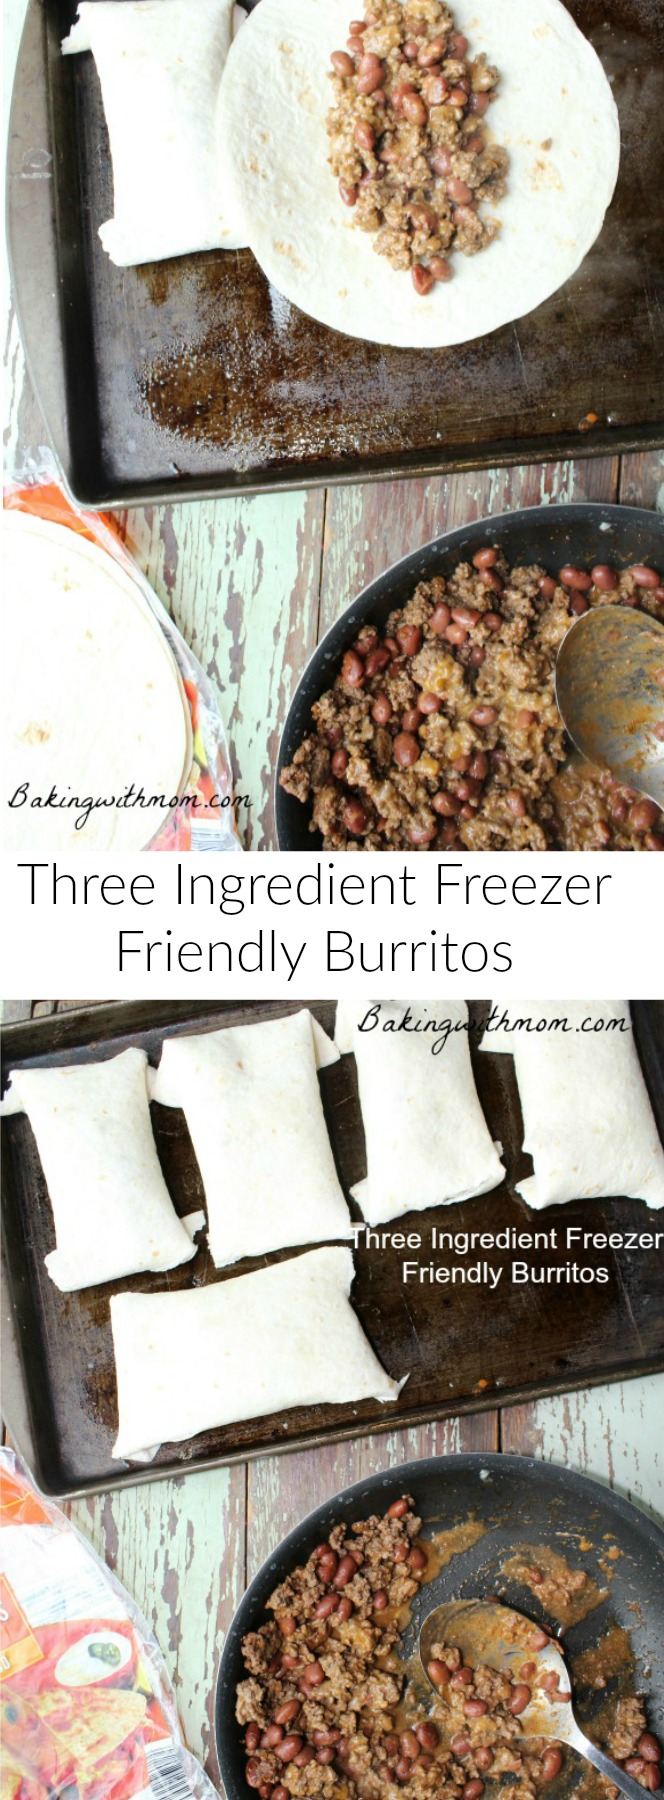 3 Ingredient freezer friendly burritos recipe is a great lunch or on the go meal for your family.